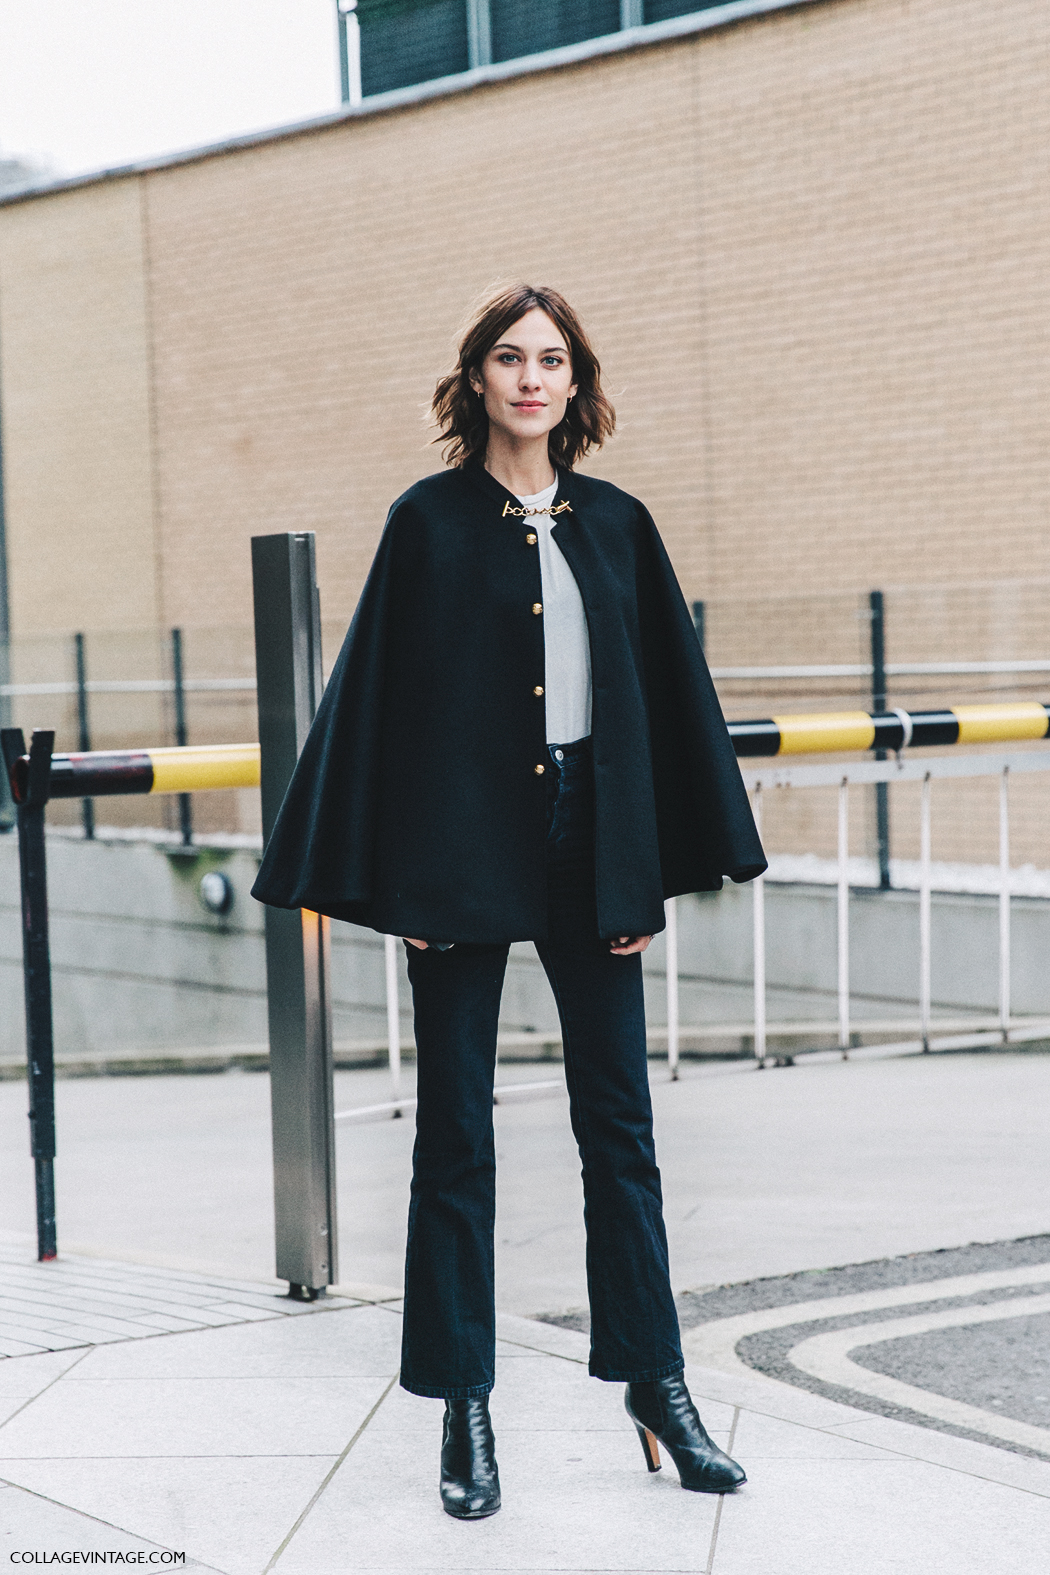 LFW-London_Fashion_Week_Fall_16-Street_Style-Collage_Vintage-Alexa_Chung-Black-Burberry-1